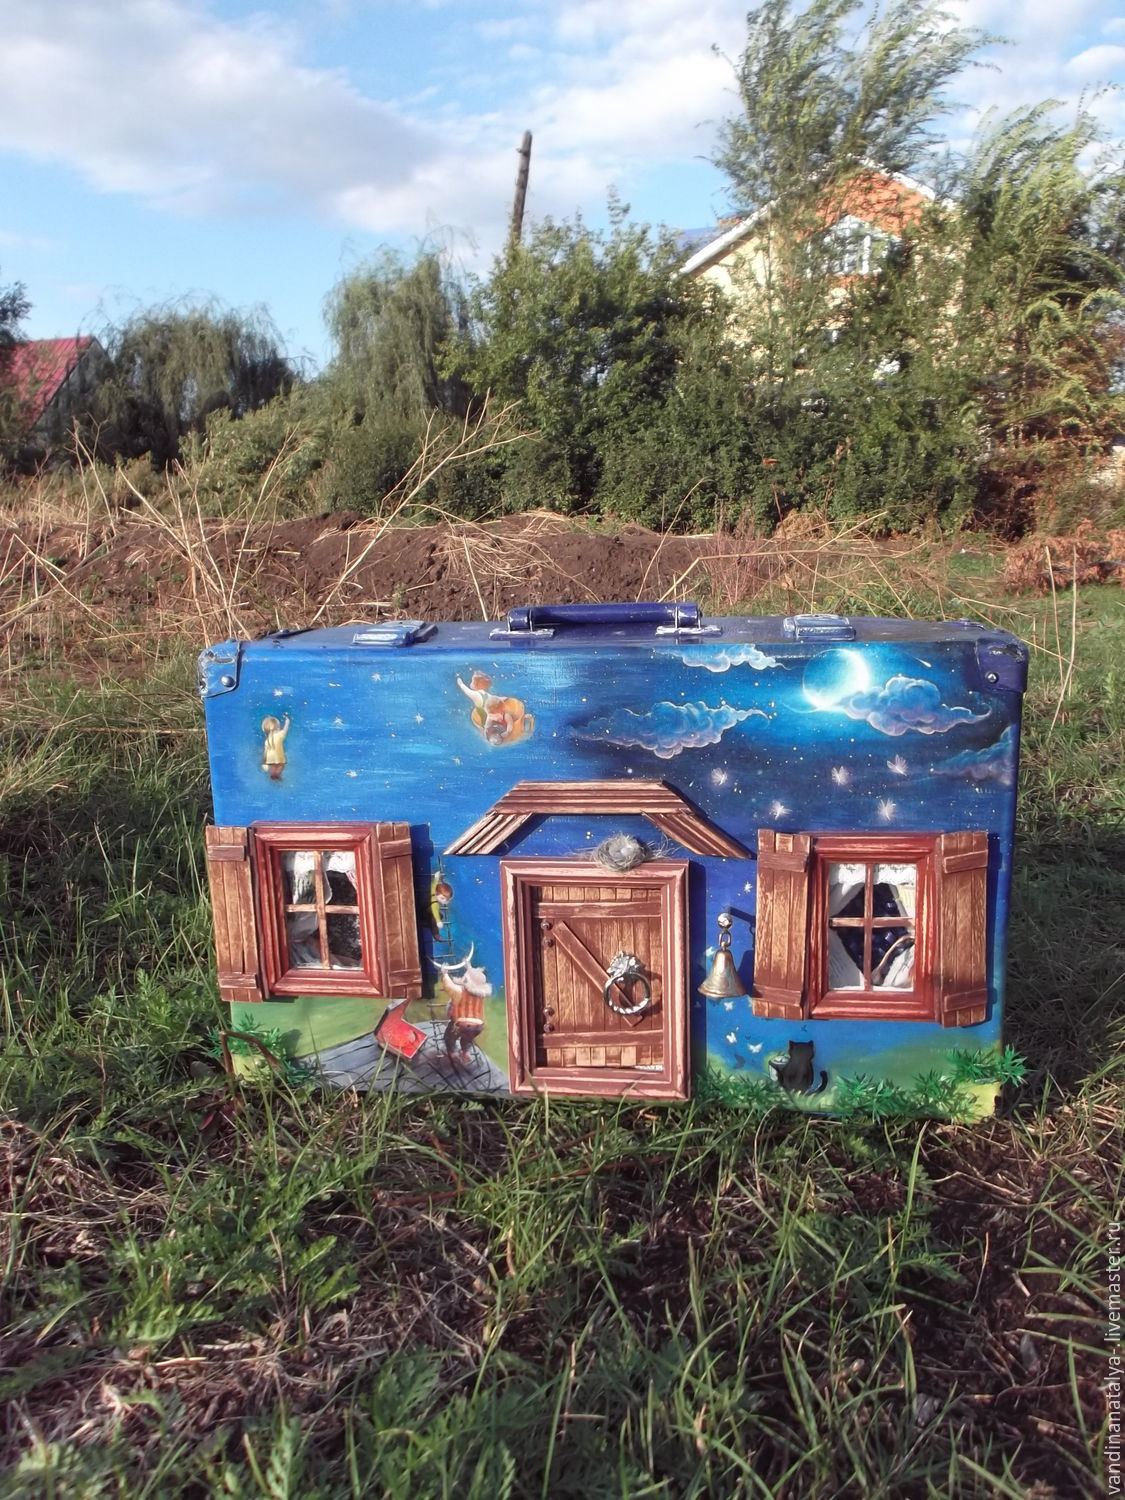 suitcase - cabin `bedtime story`